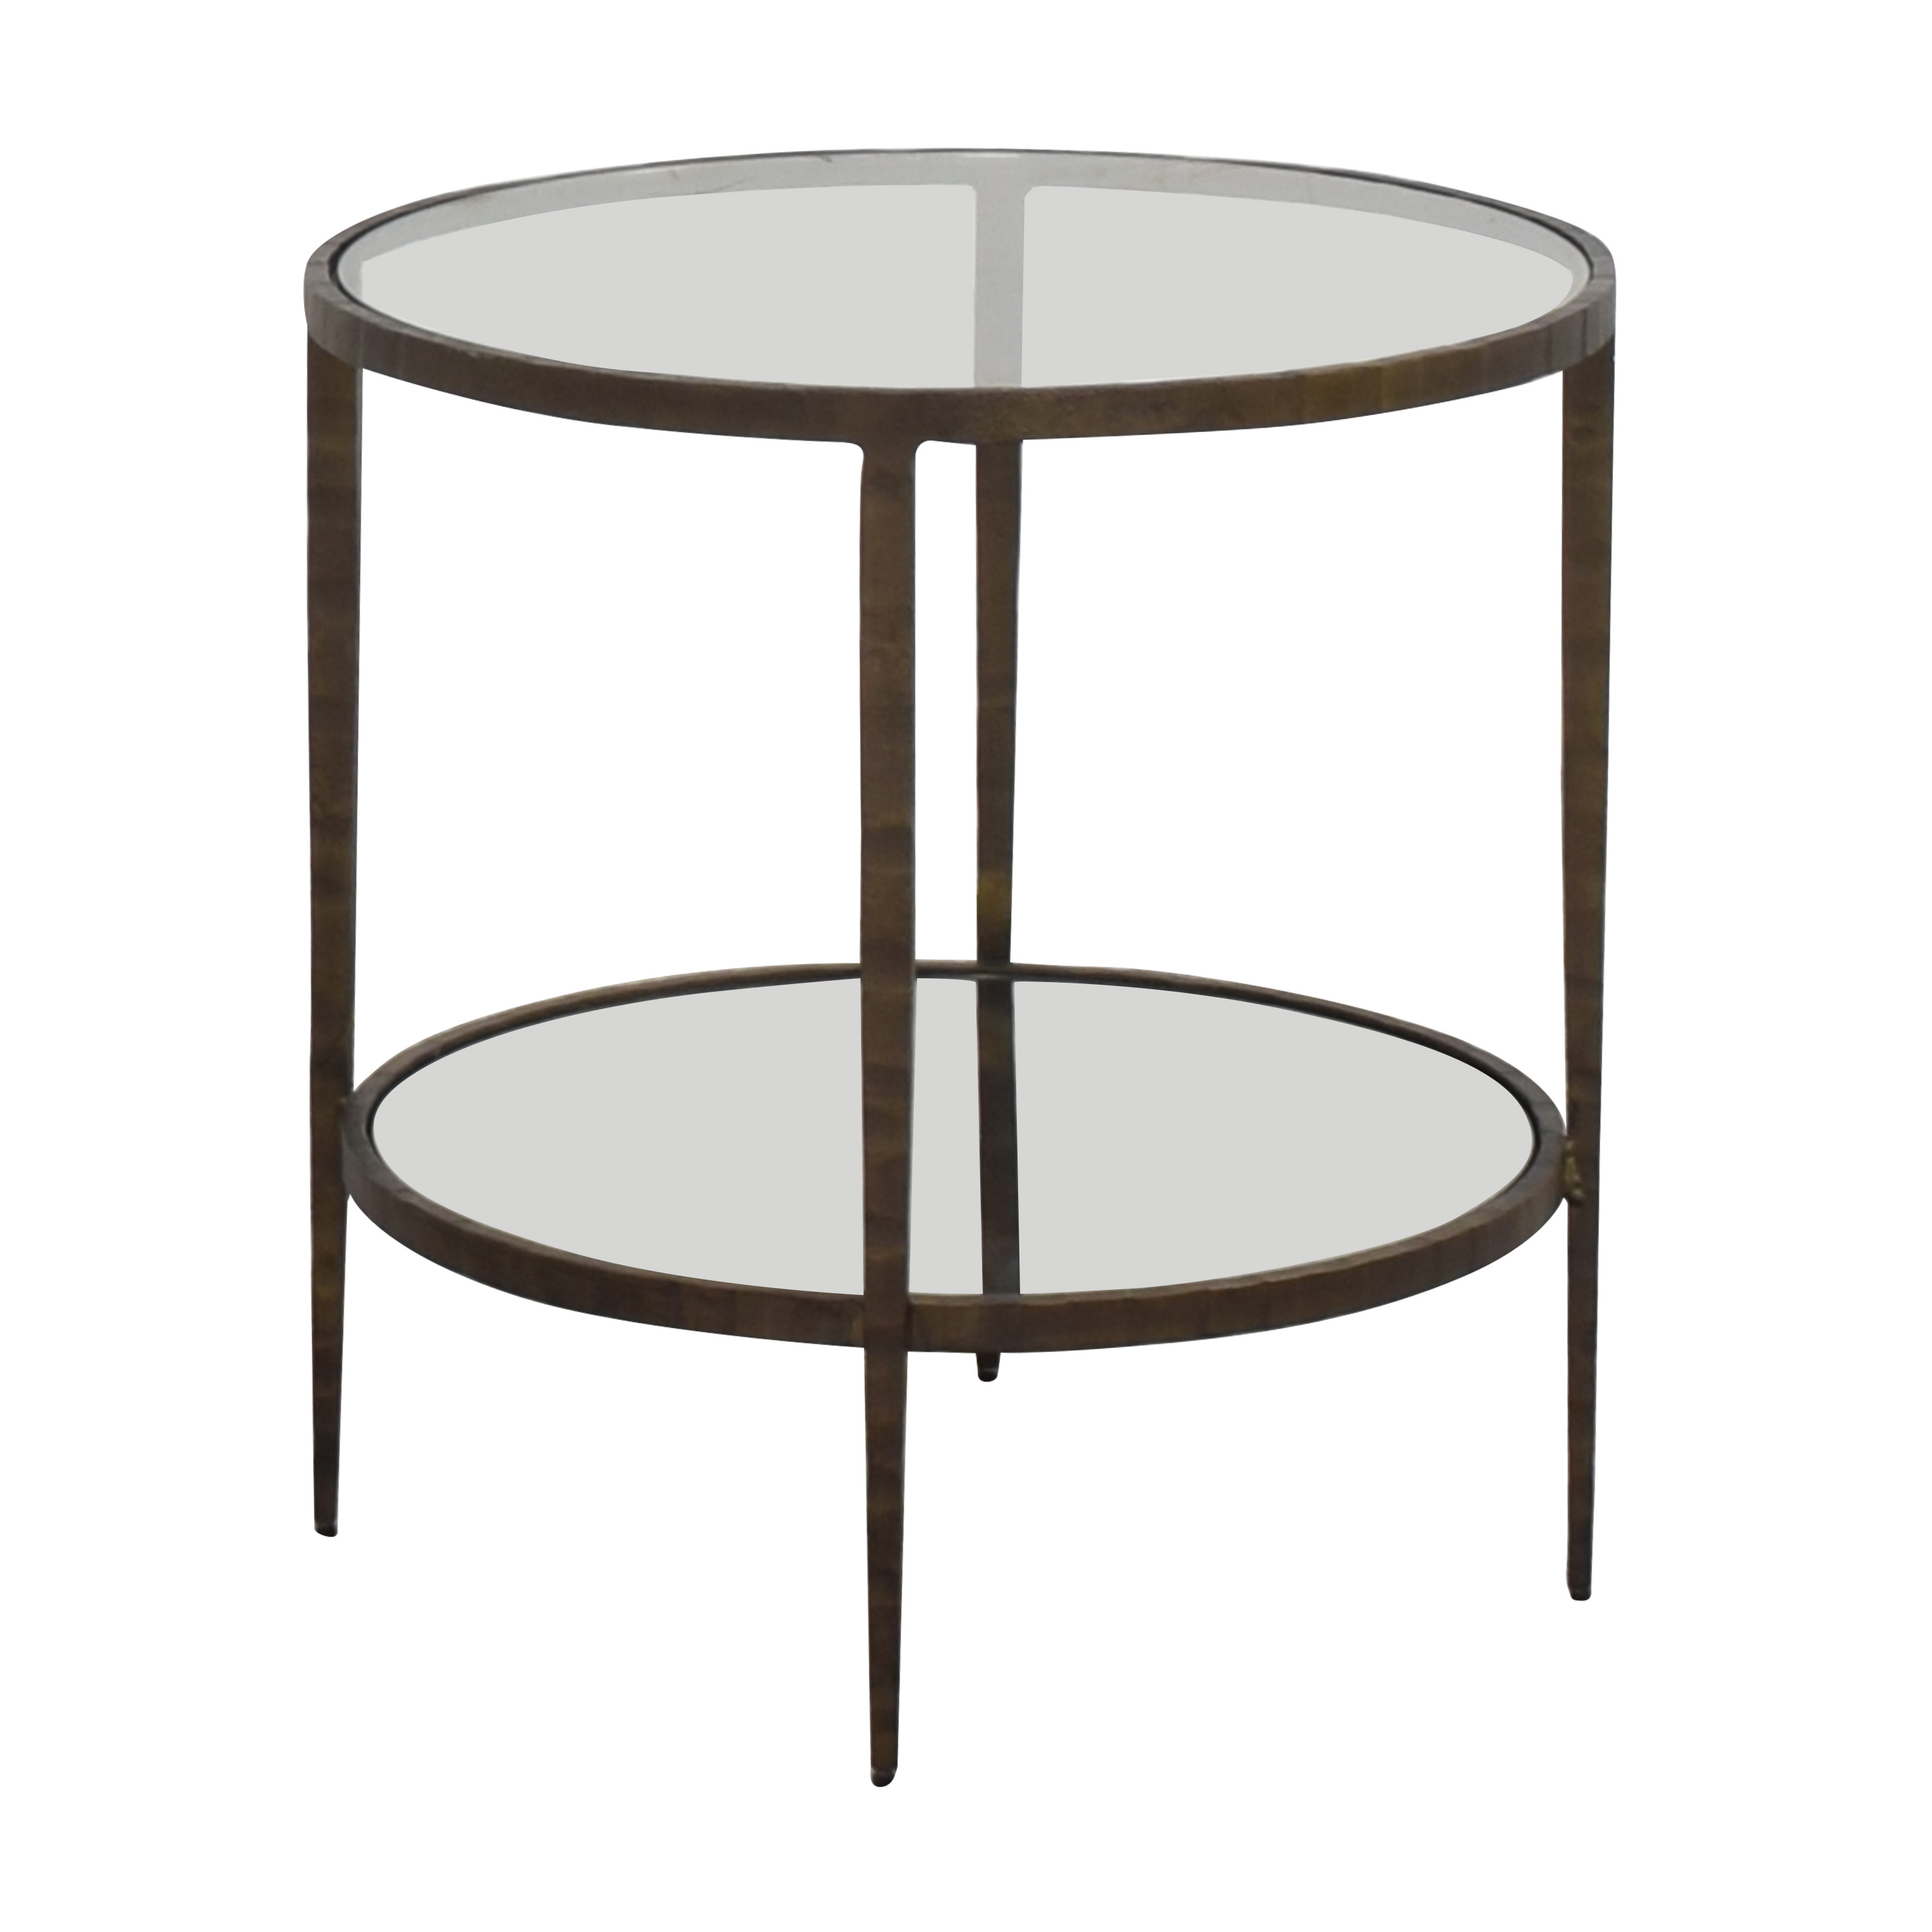 Crate & Barrel Crate & Barrel Clairemont Side Table second hand